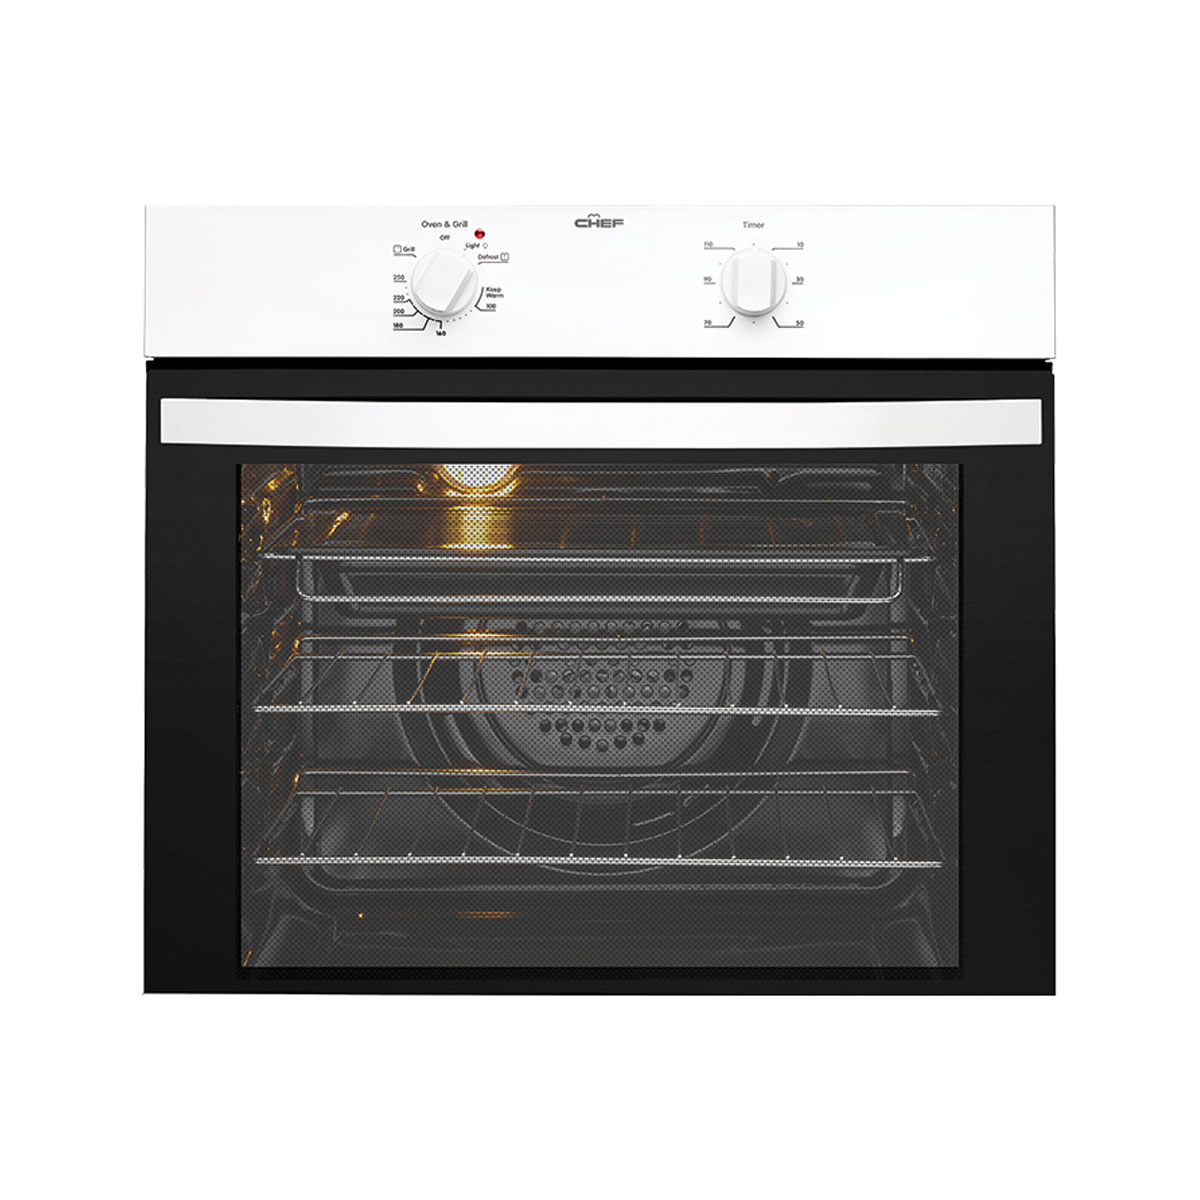 Chef CVE612WA Electric Wall Oven